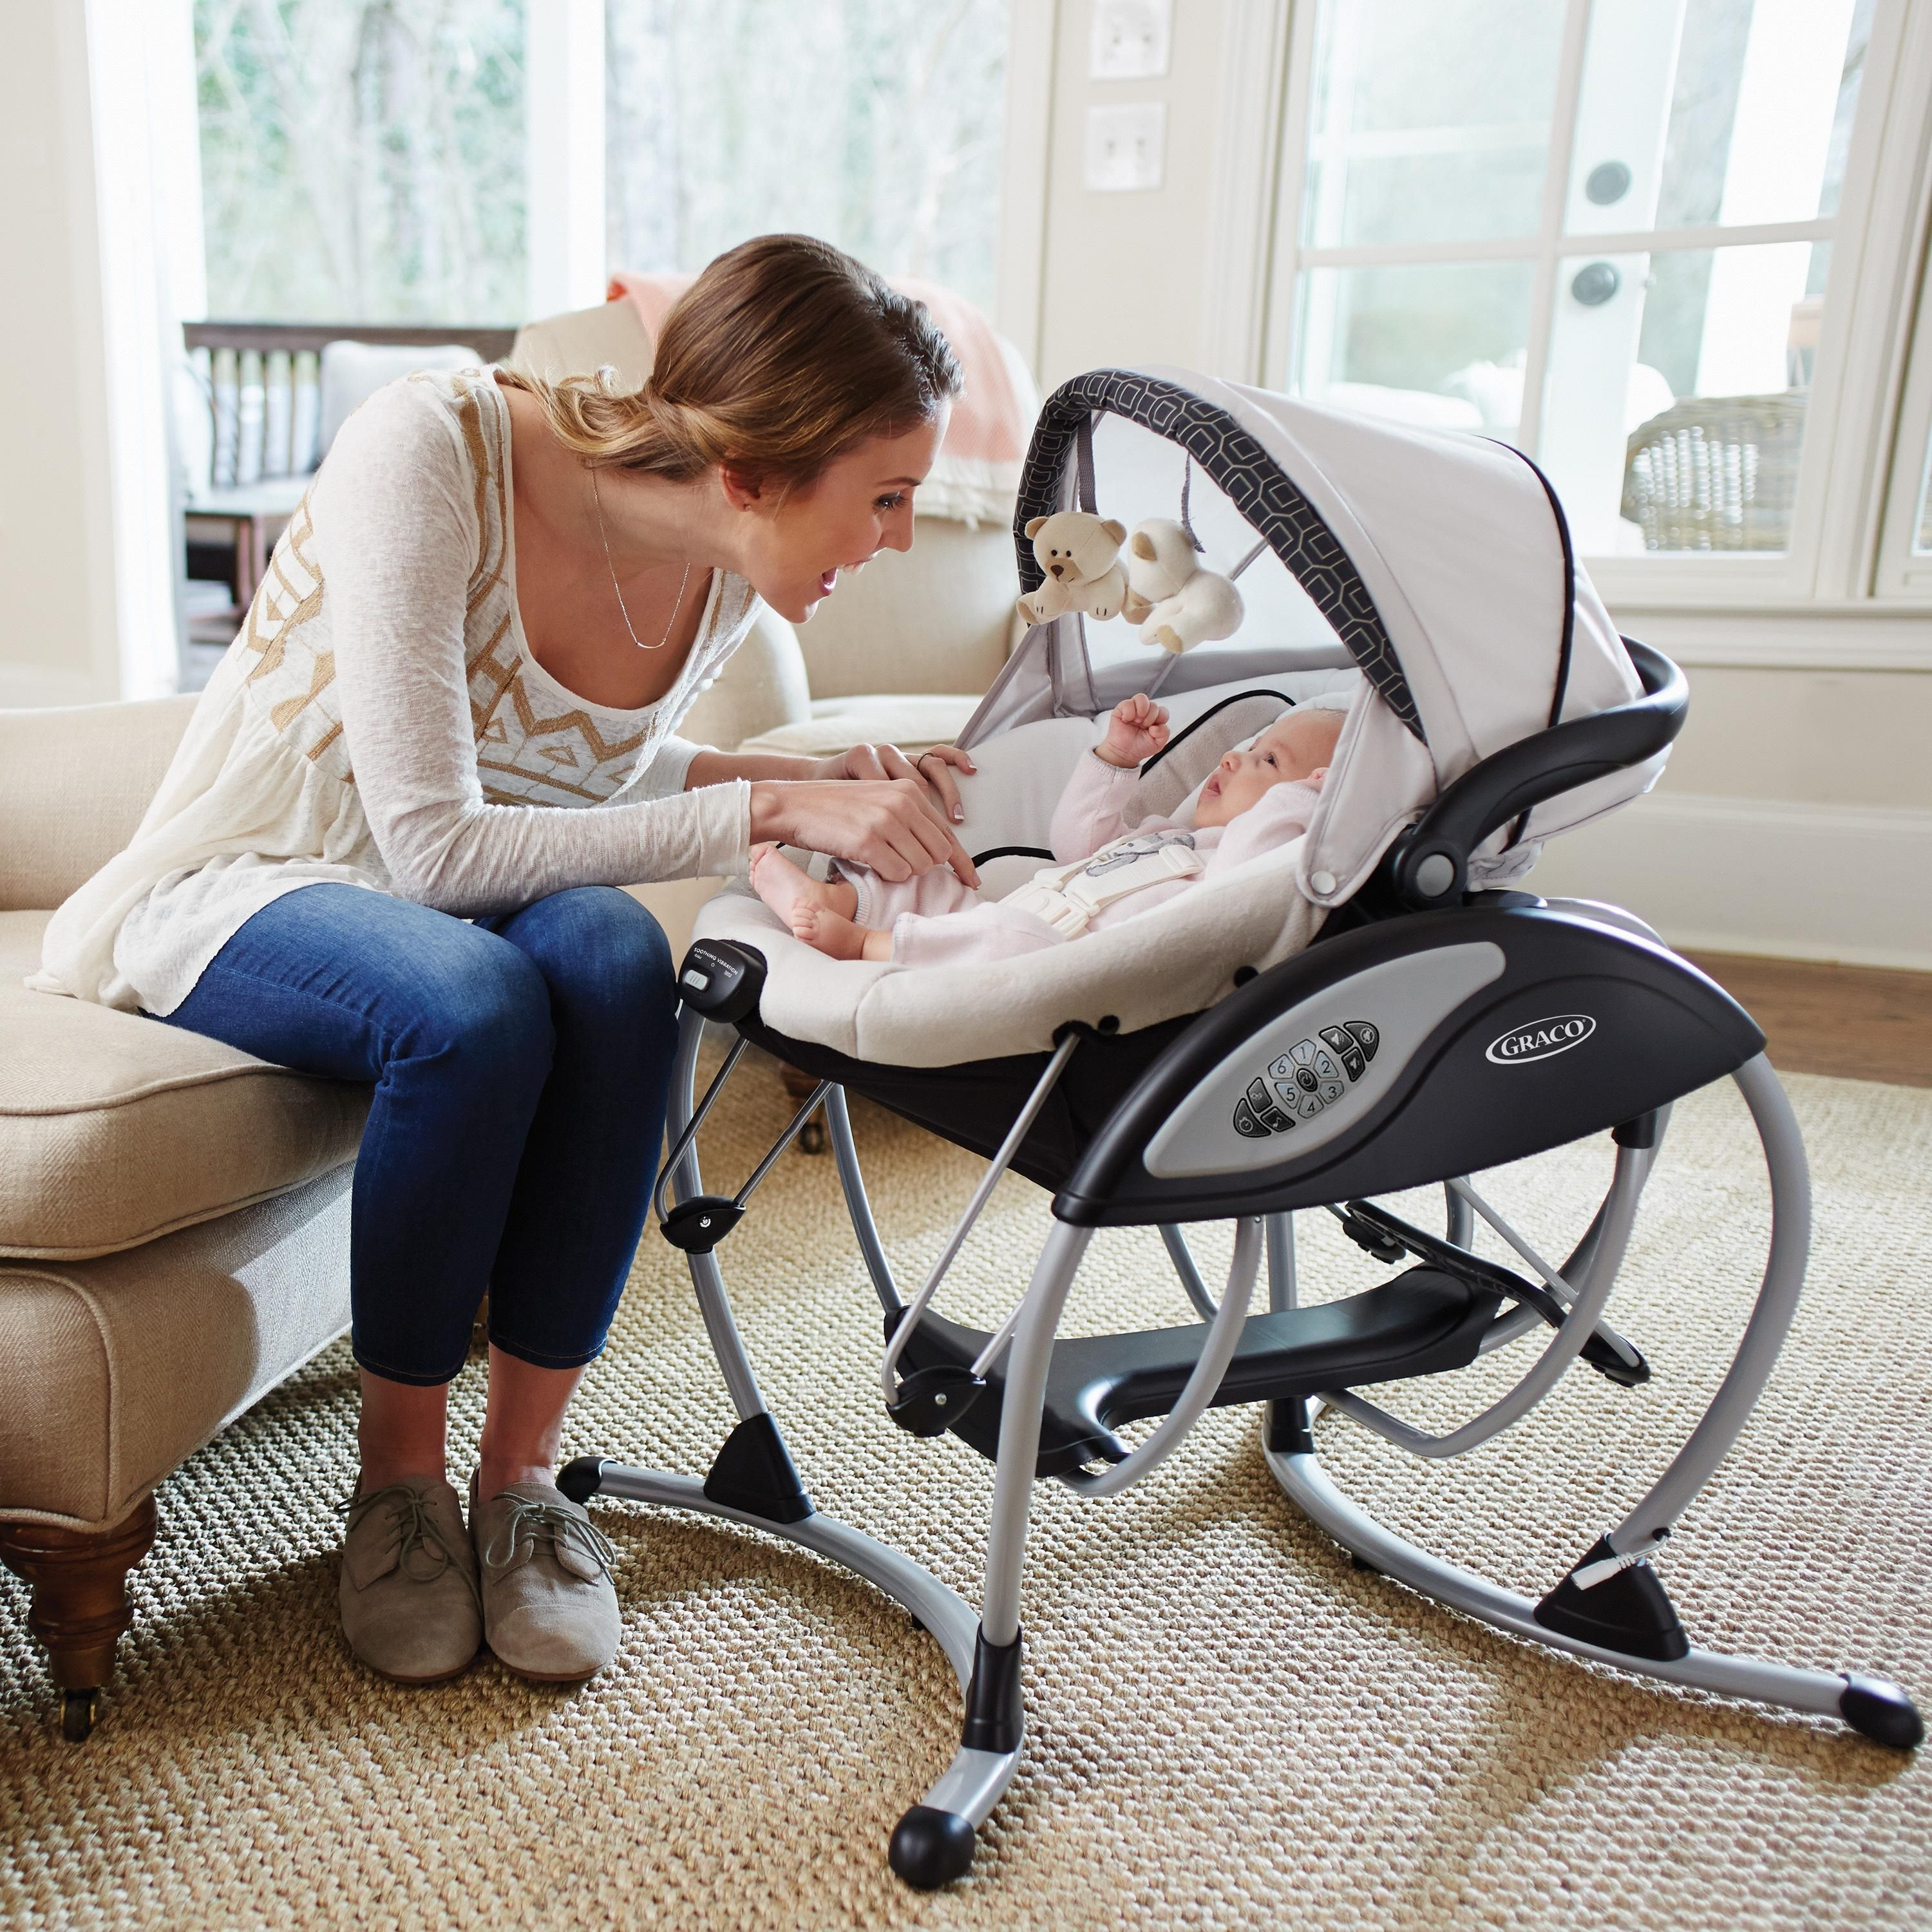 useful gifts for baby will make the mom so happy baby shower